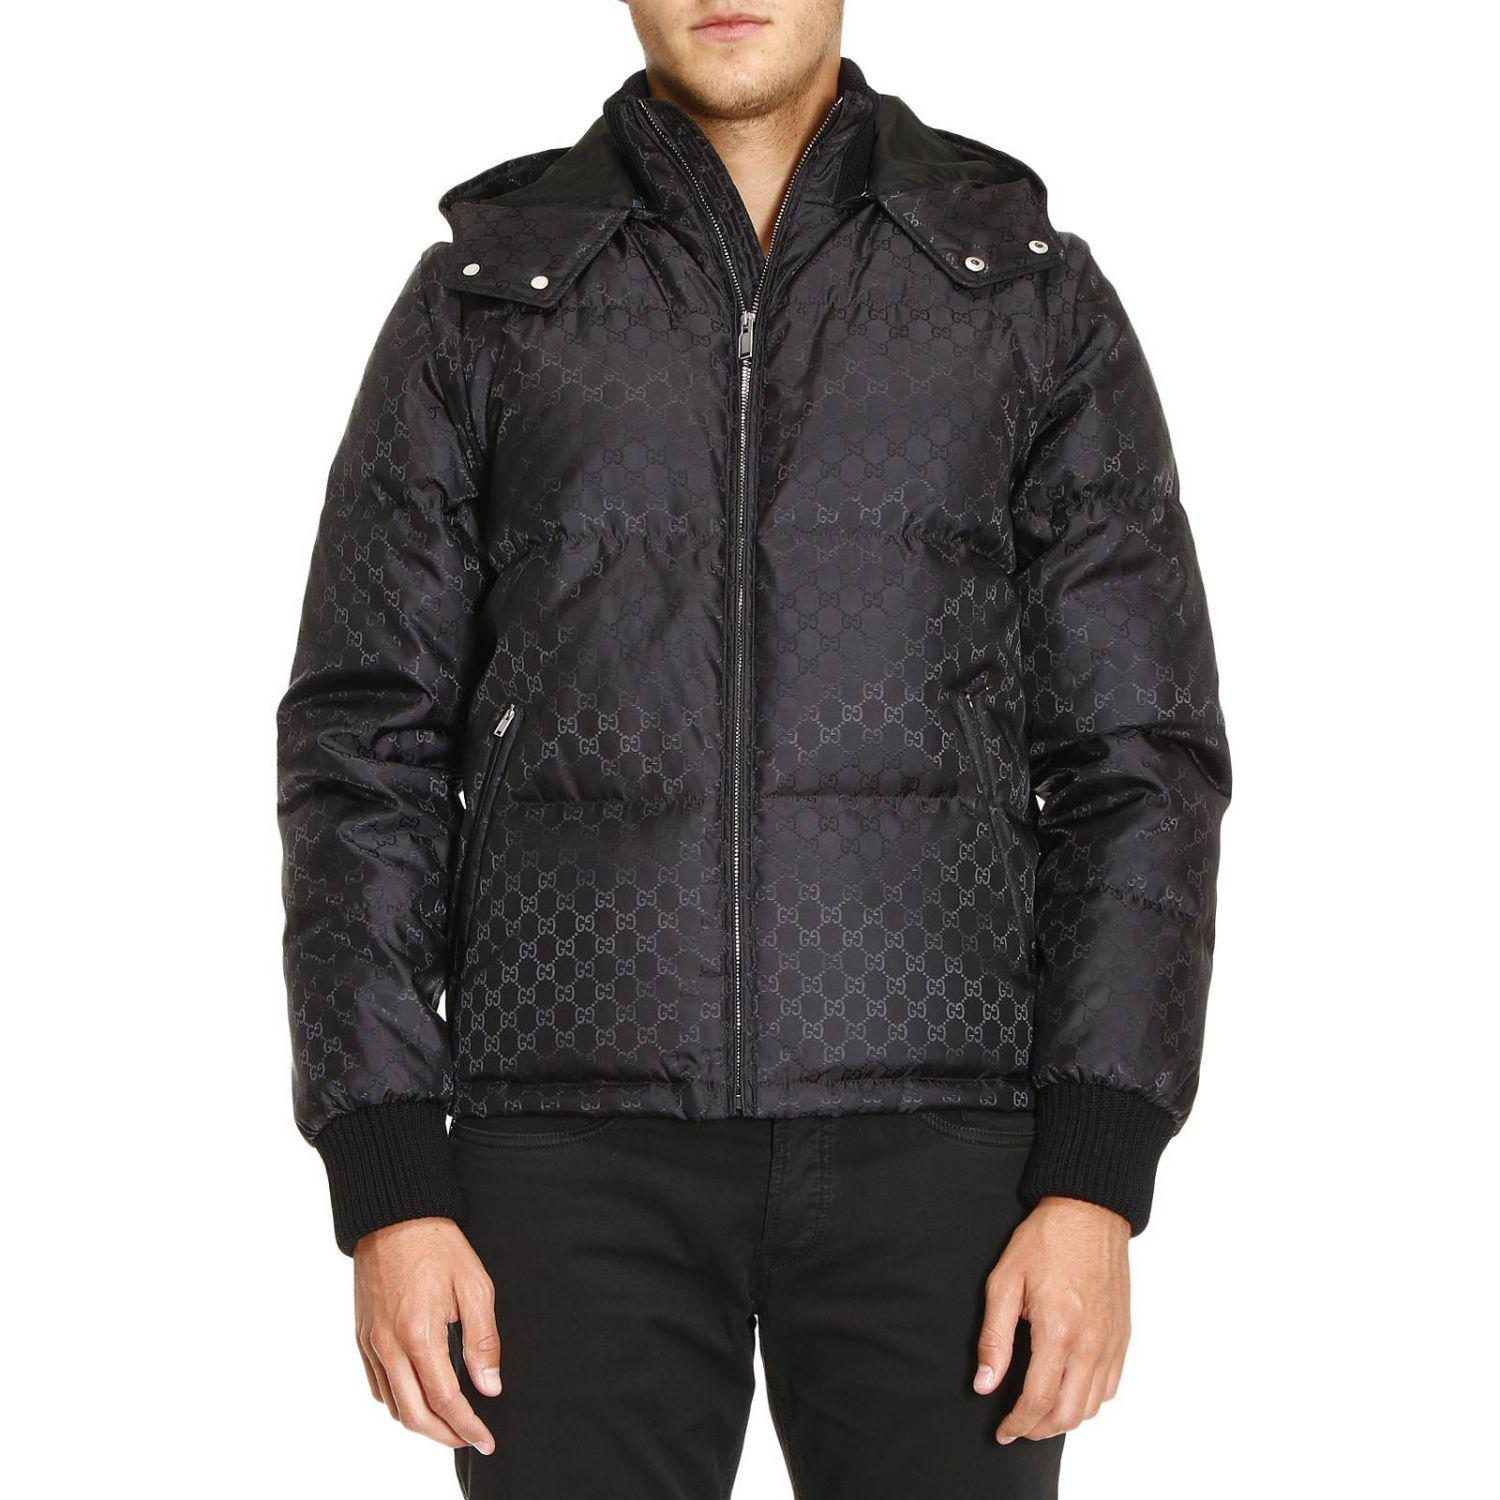 a4e398a61 Gucci Bomber Down Jacket With Removable Sleeves And Gg Monogram in ...